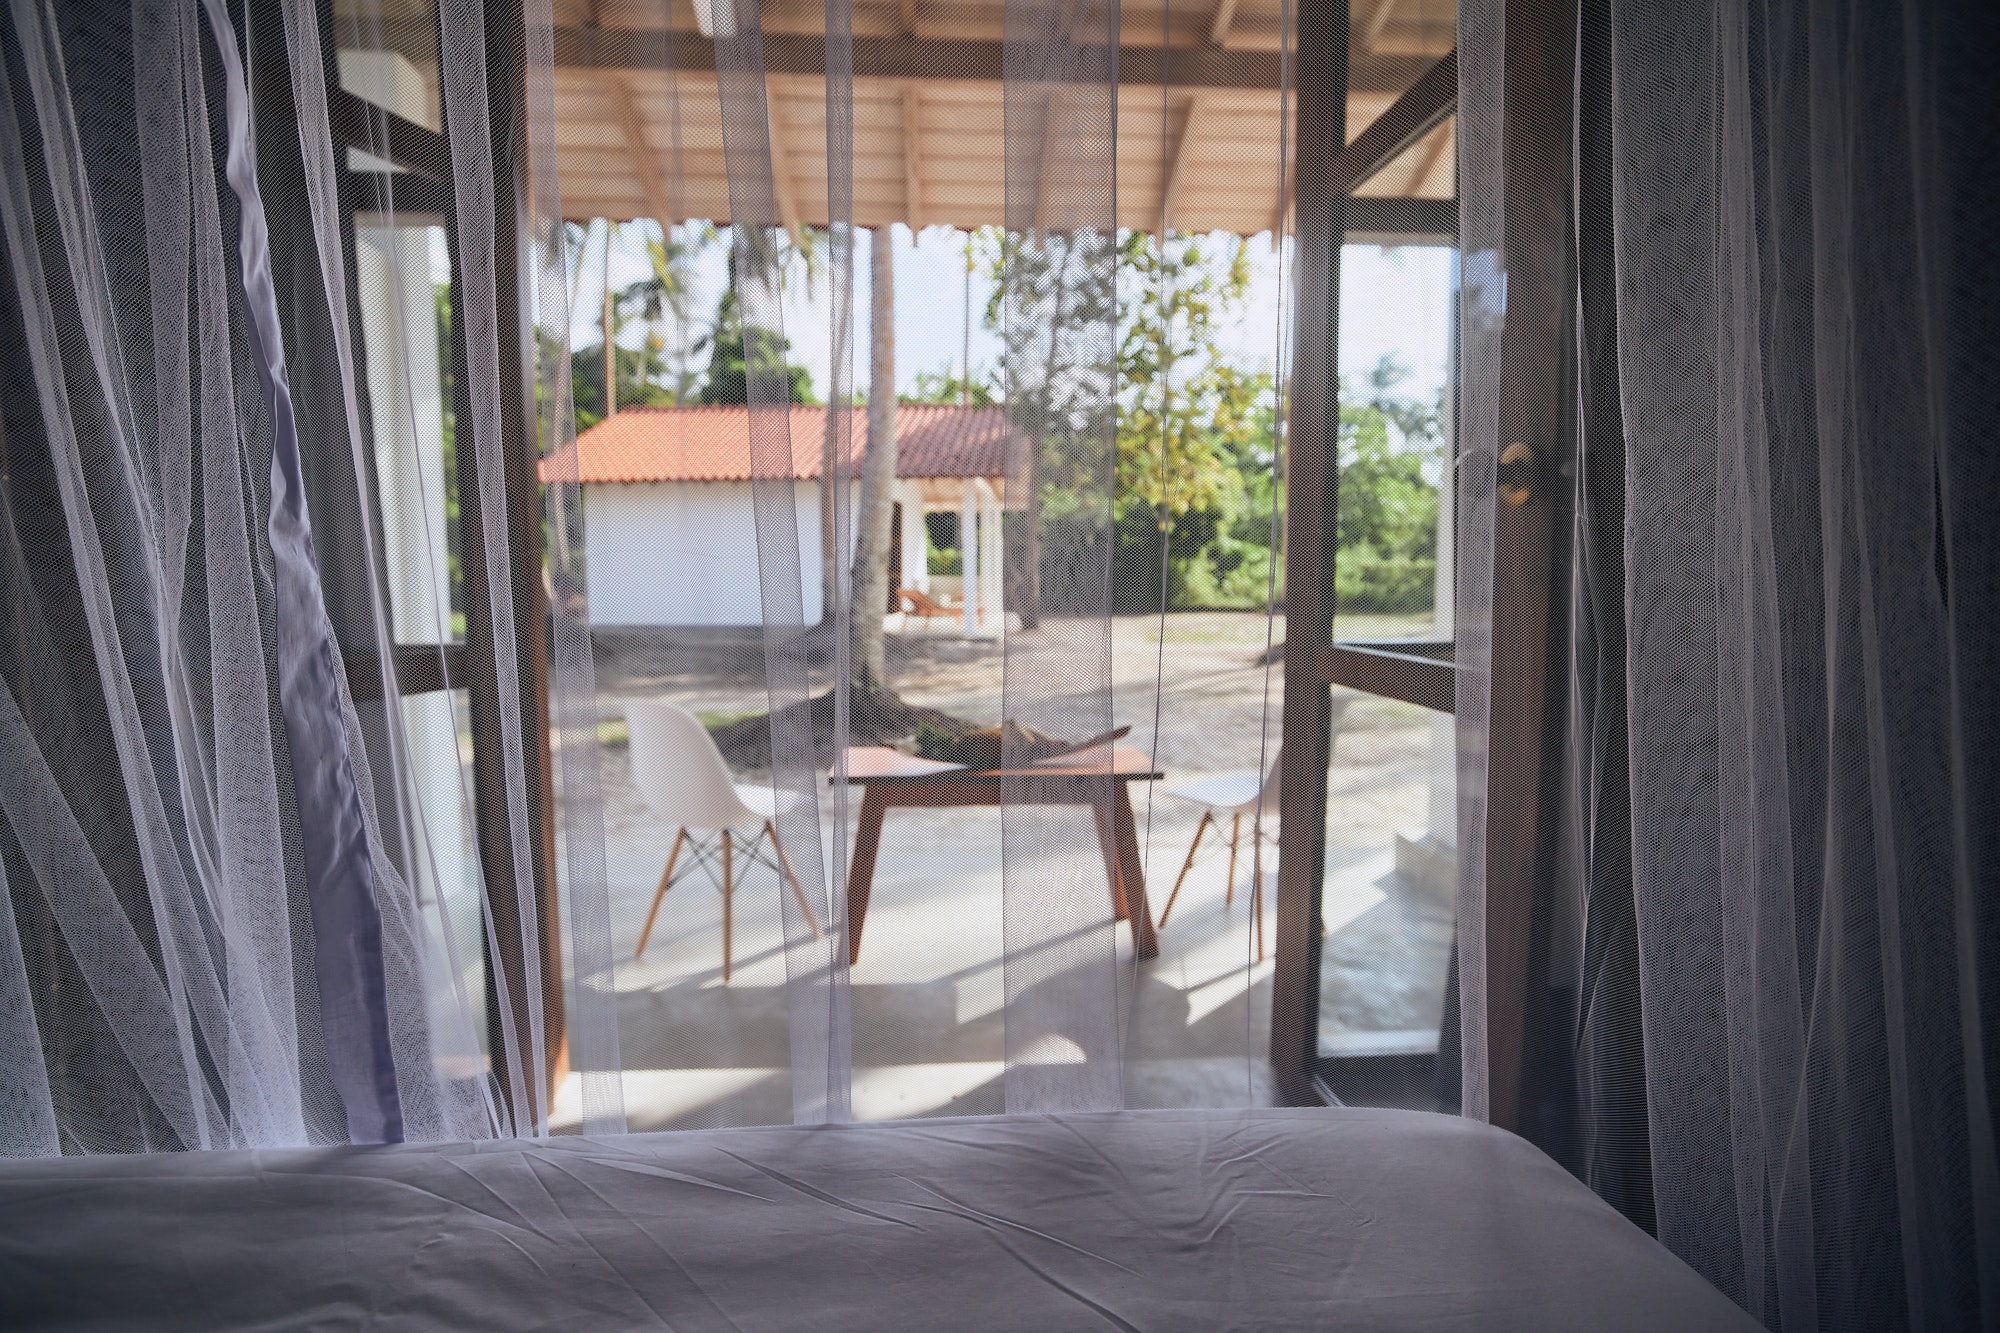 Luxury accommodation in tropical destination